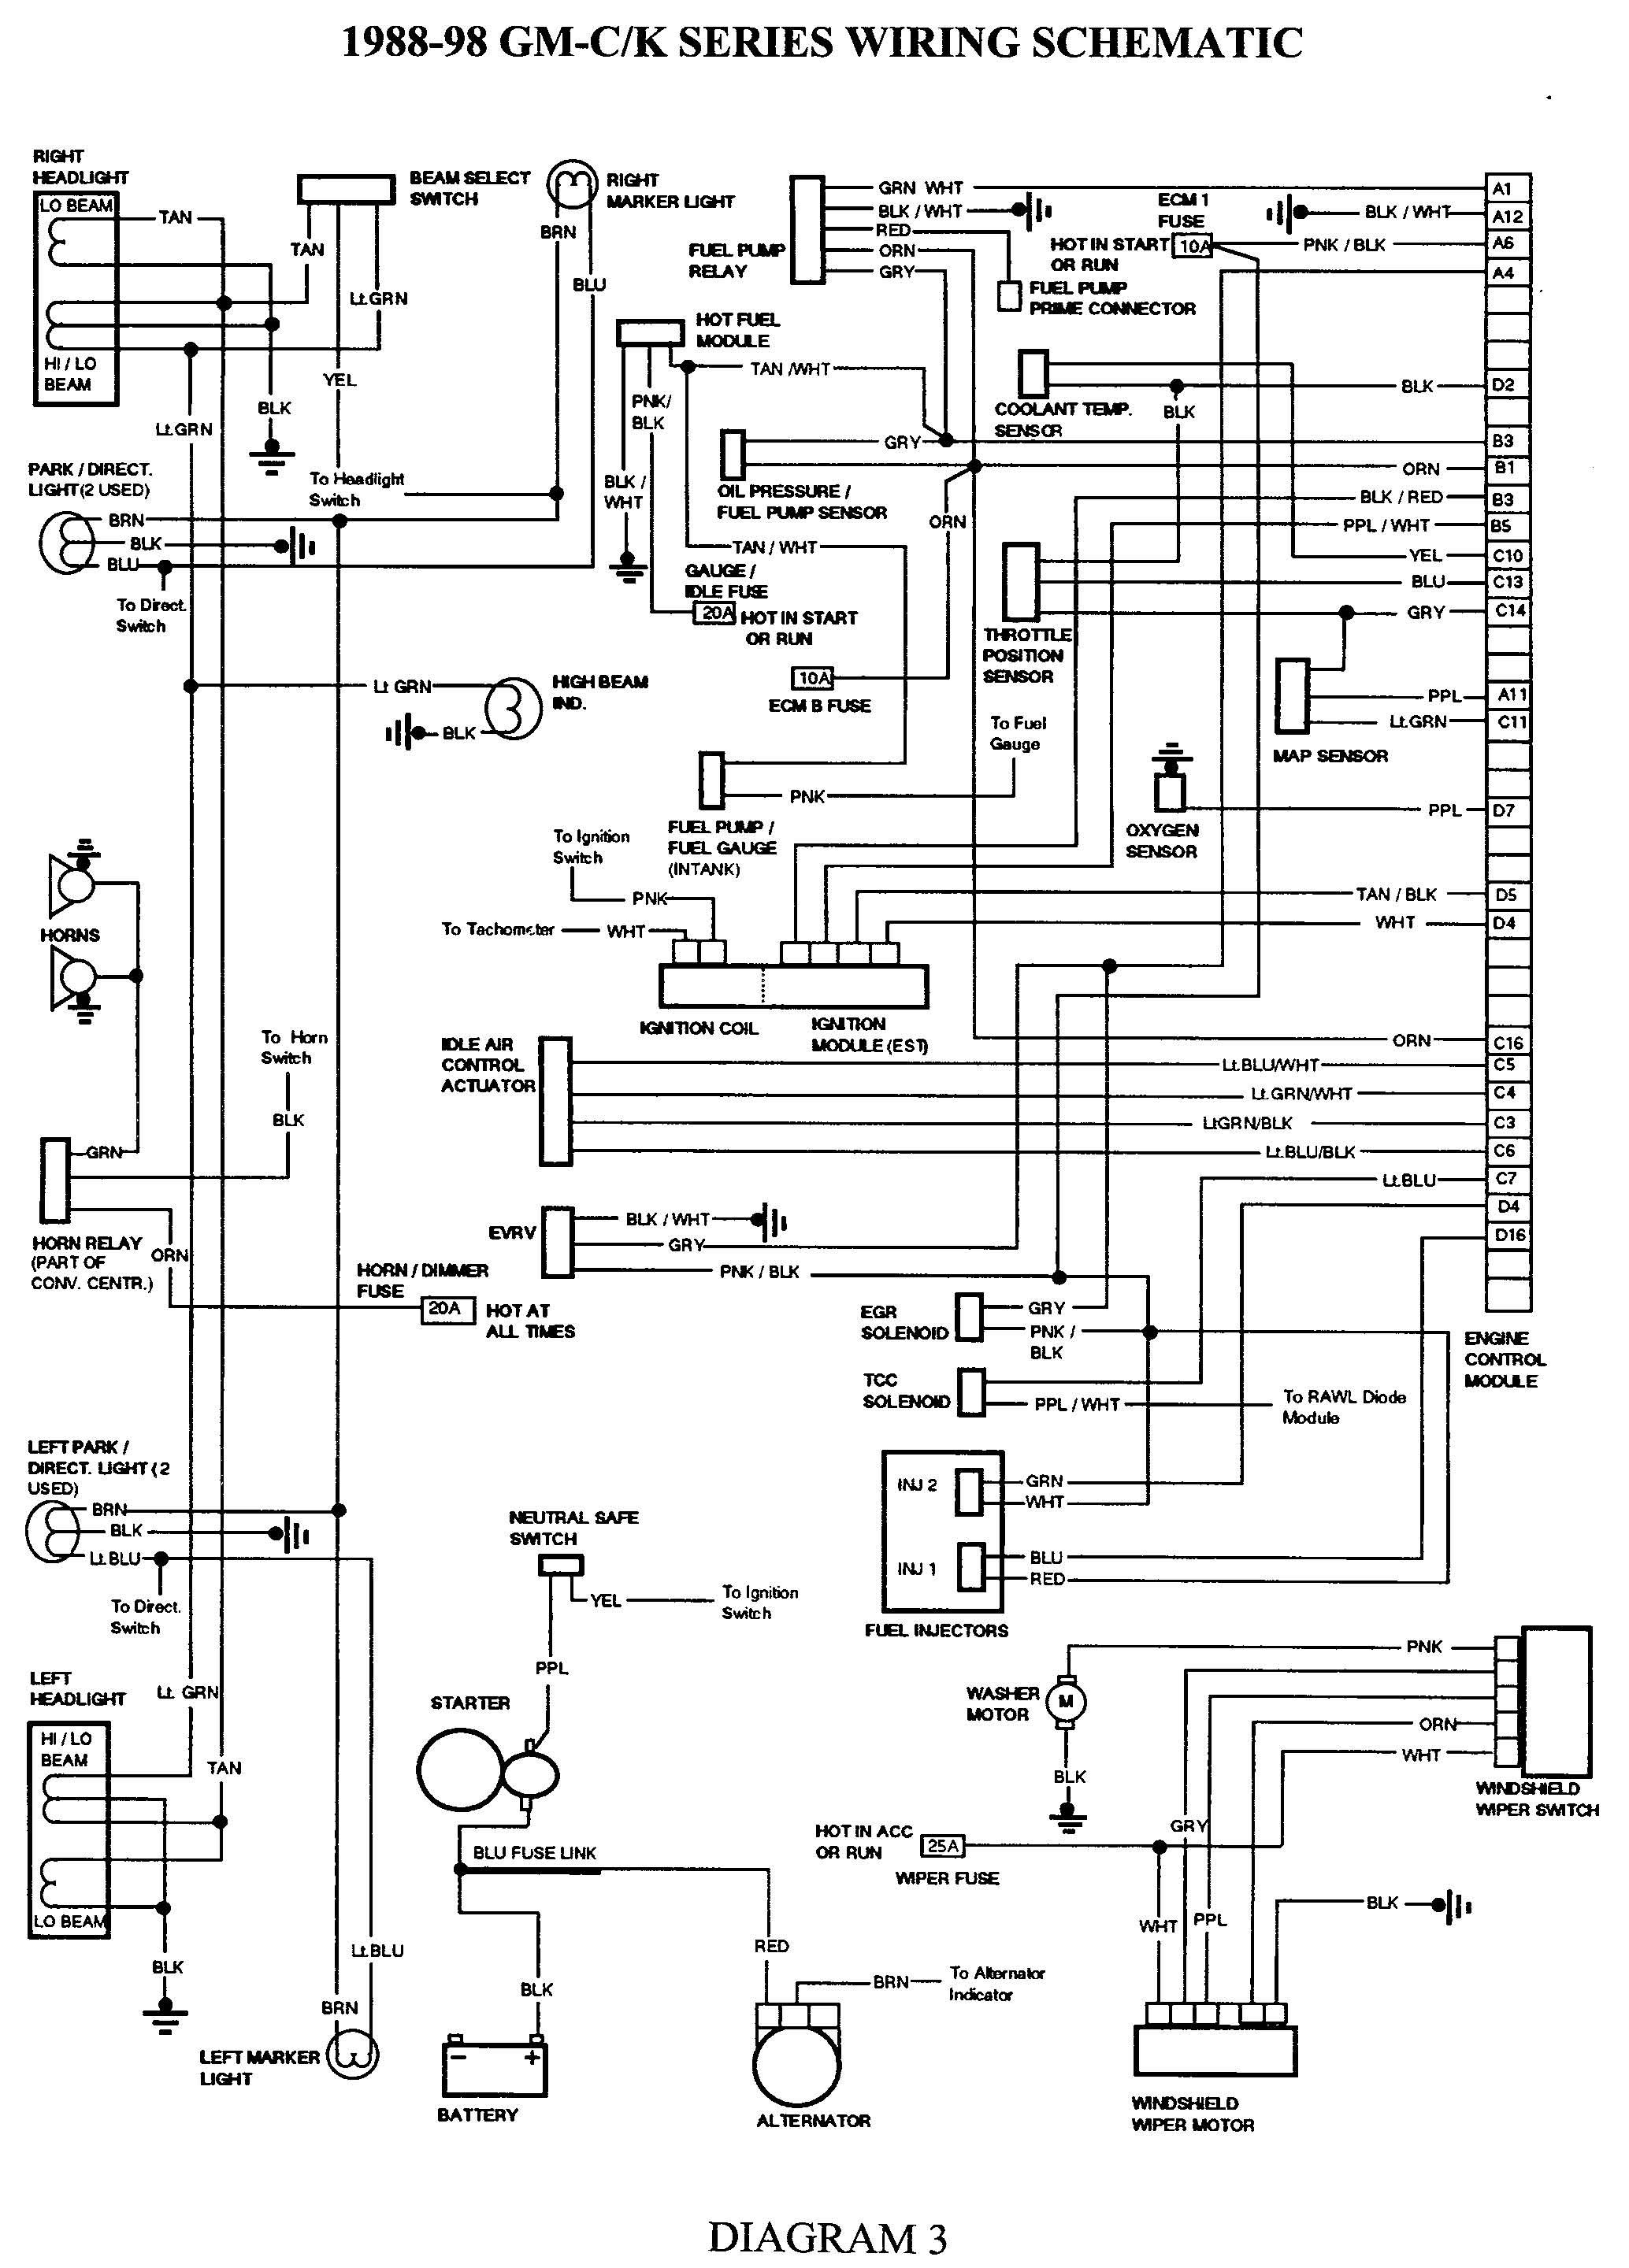 b2f2e5dbdc07dada83ef514f6d4ce3d4 wiring diagram for 1998 chevy silverado google search 98 chevy Chevy Truck Wiring Harness Diagram at n-0.co